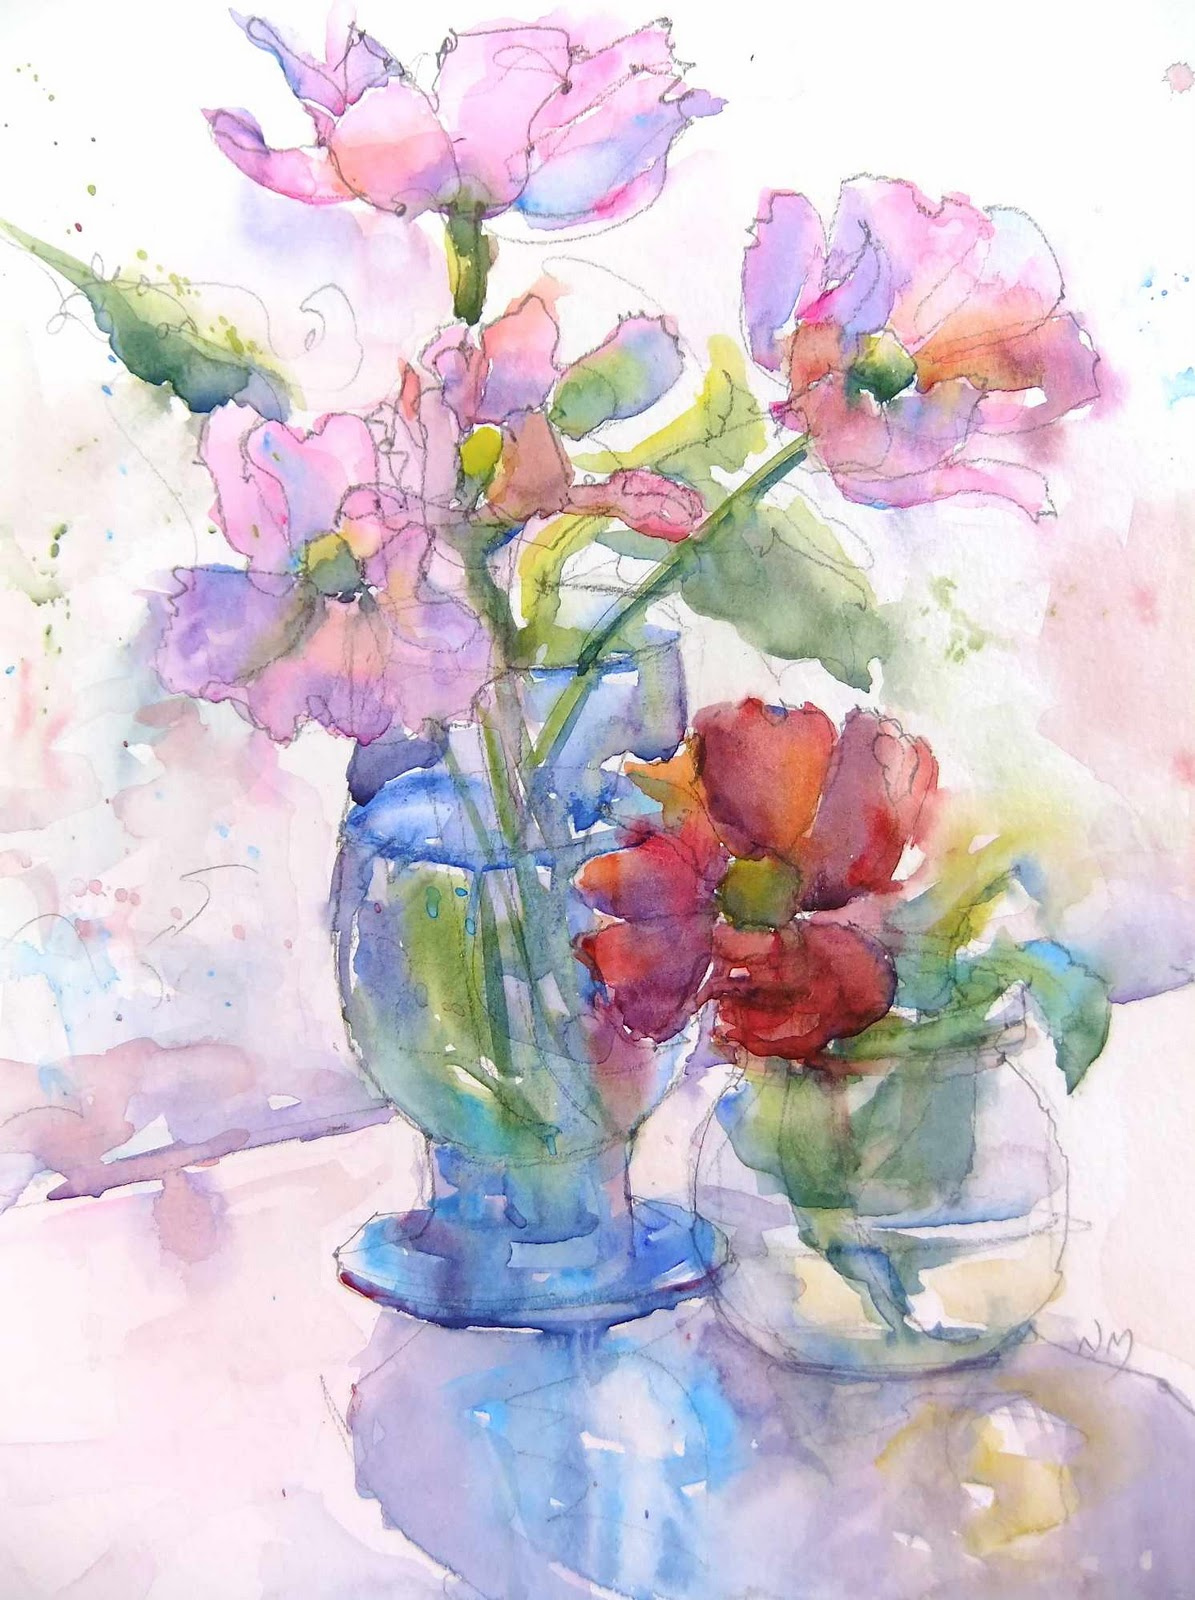 Nora macphail artist december 2011 for Watercolor flower images